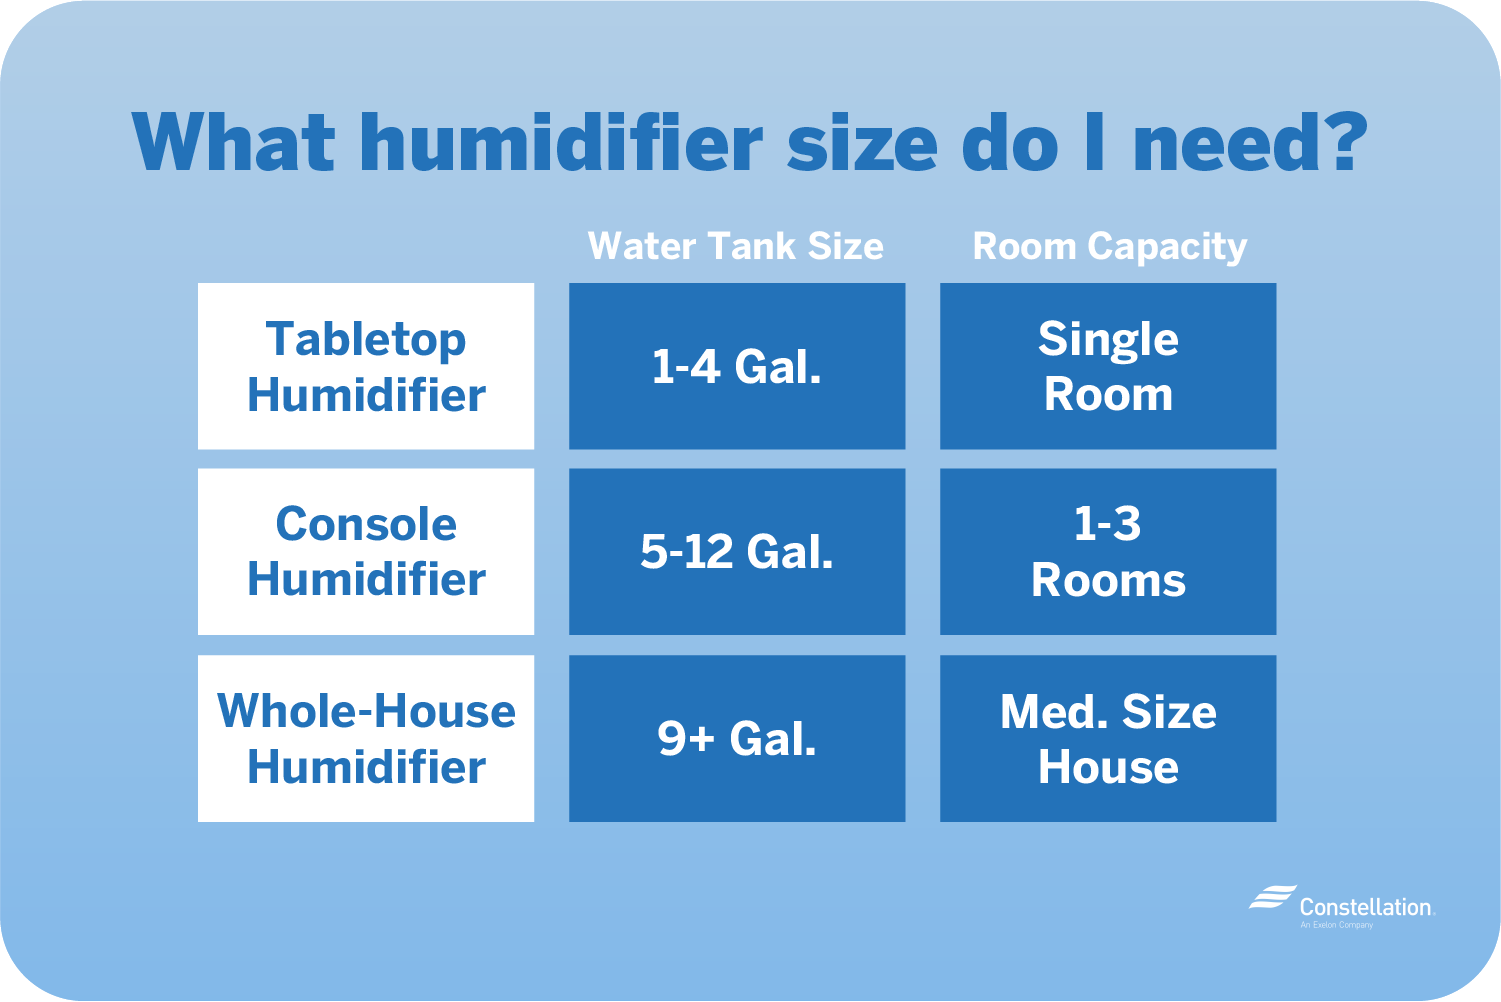 Select the proper energy-efficient humidifier based on the size of the space you're humidifying